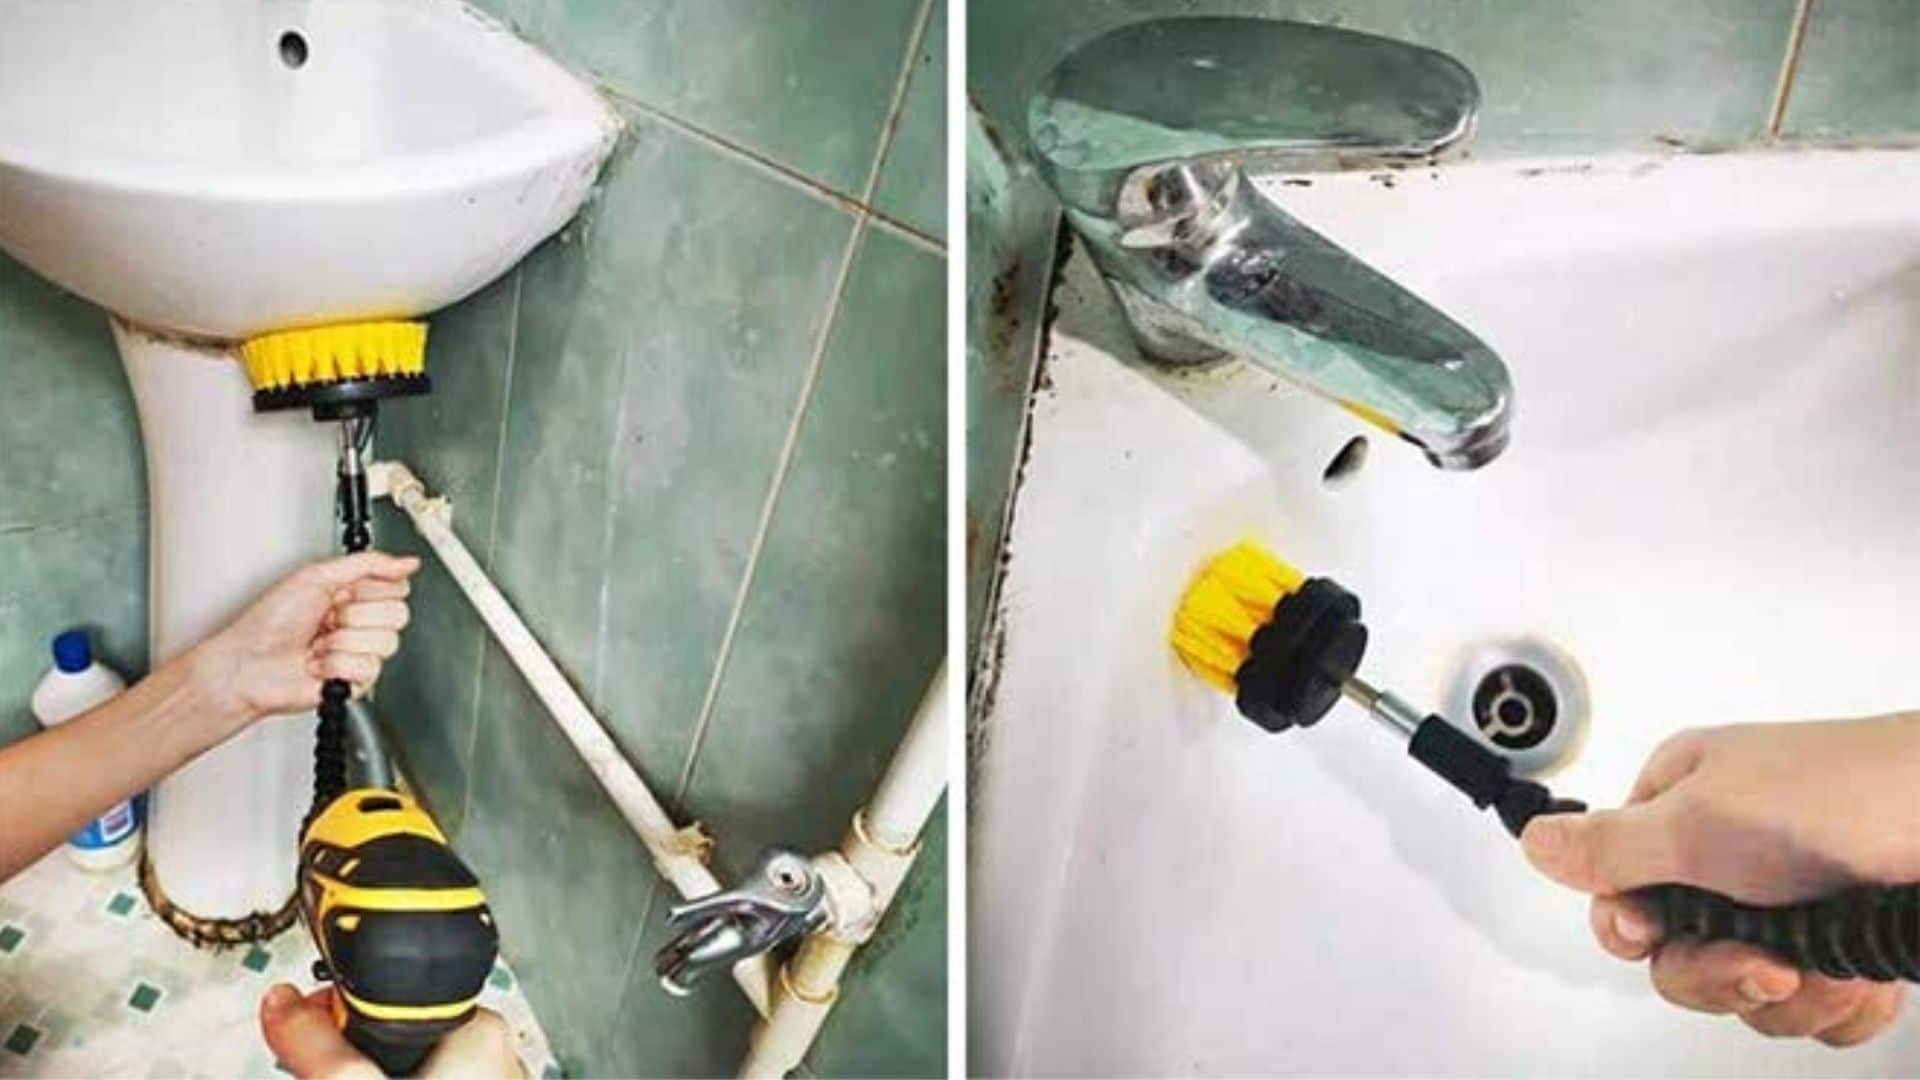 image of person using Jumbo Filter's 22Pcs Drill Brush Power Scrubber 6 Drill Brushes to clean sink and bathroom